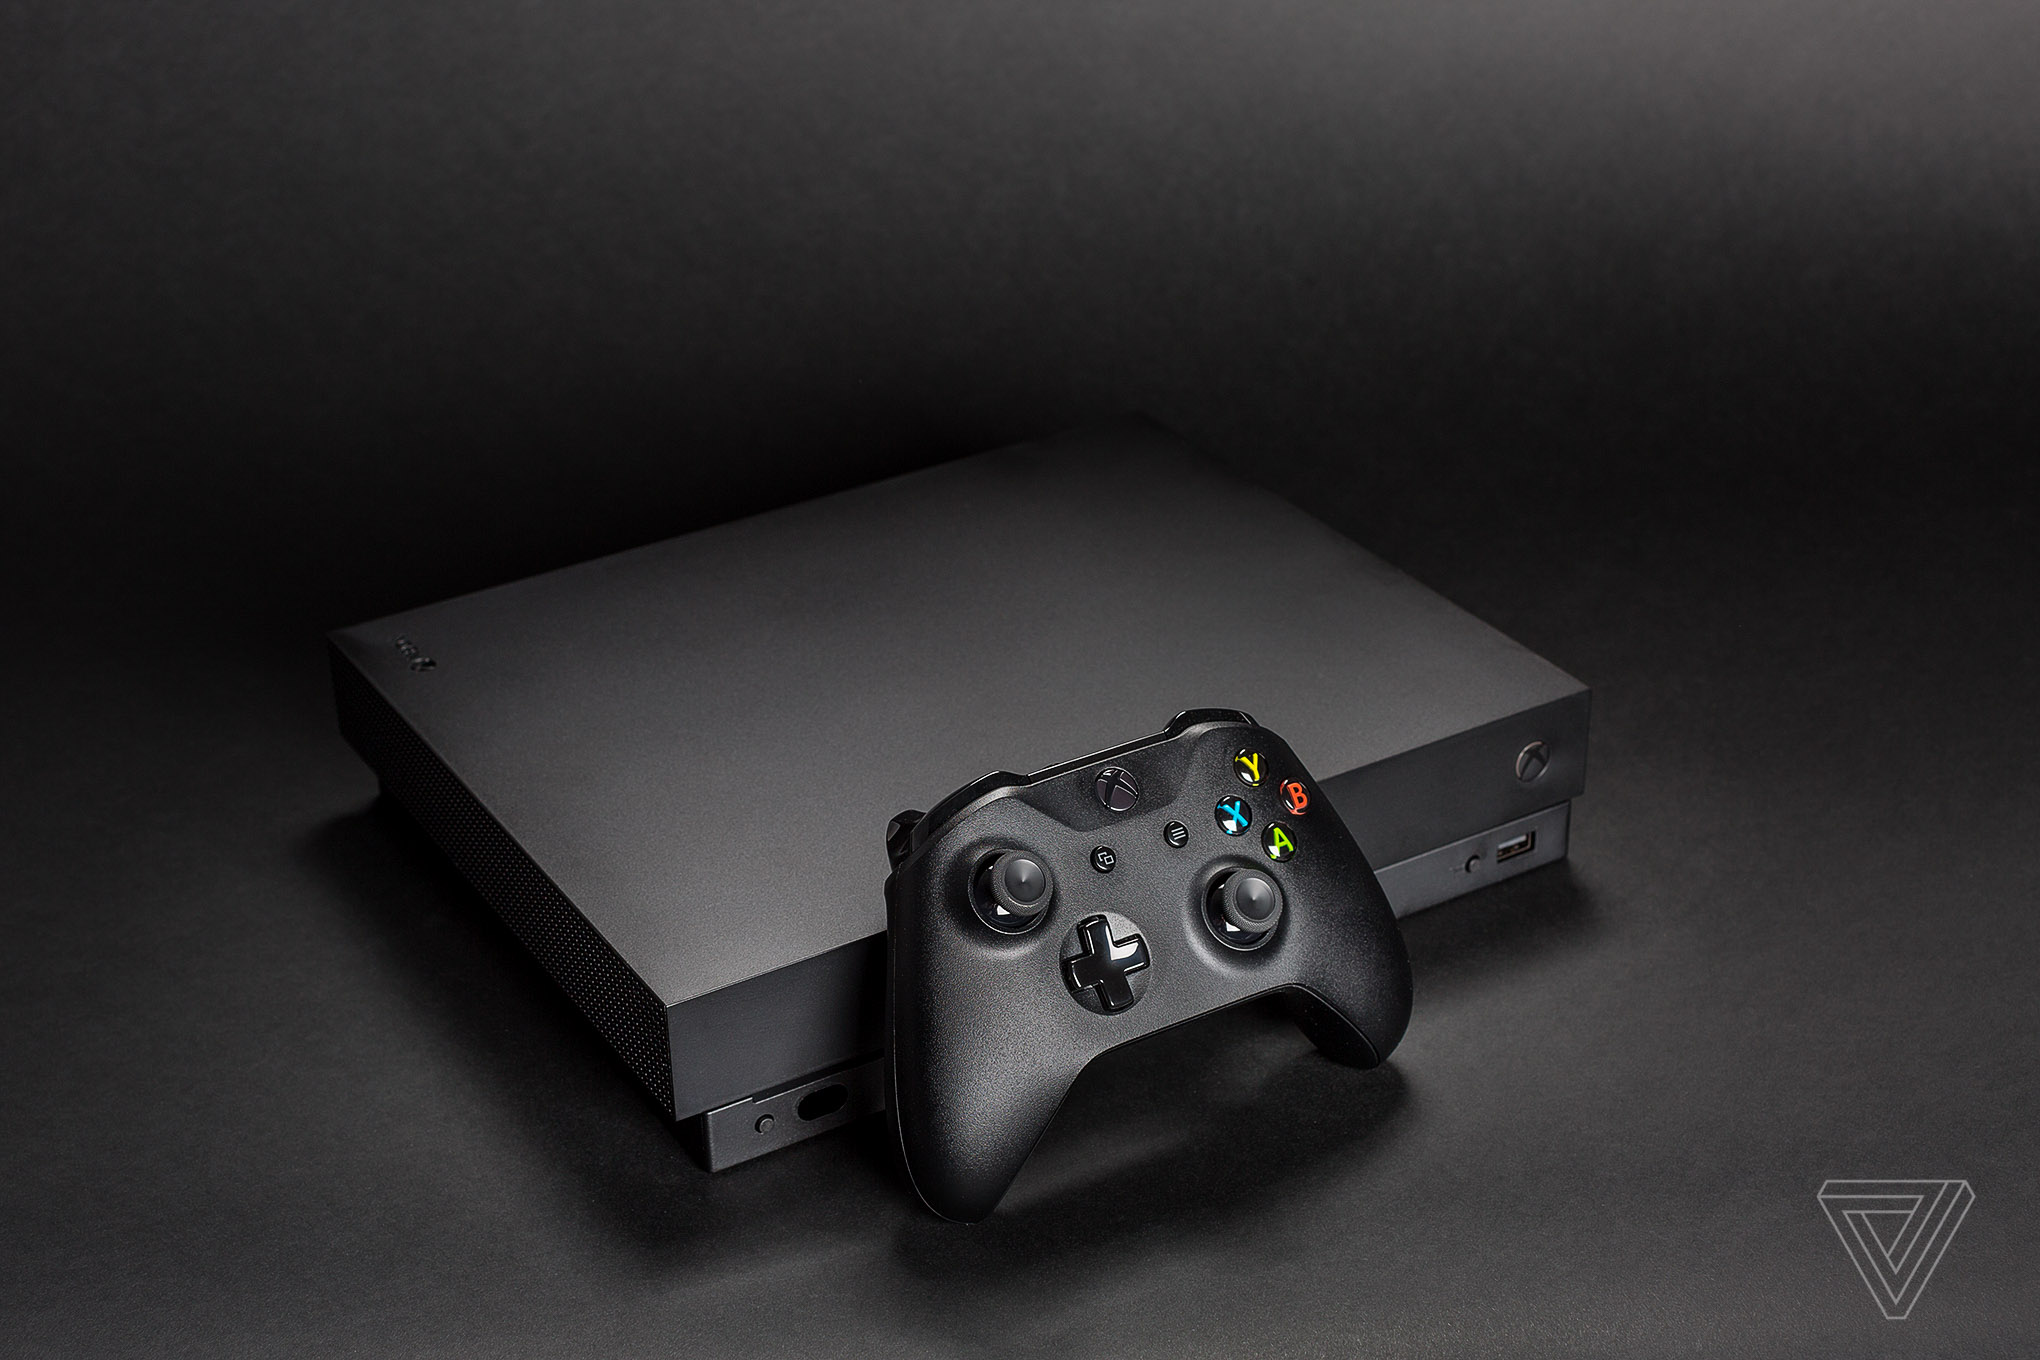 Xbox One X review - The Verge